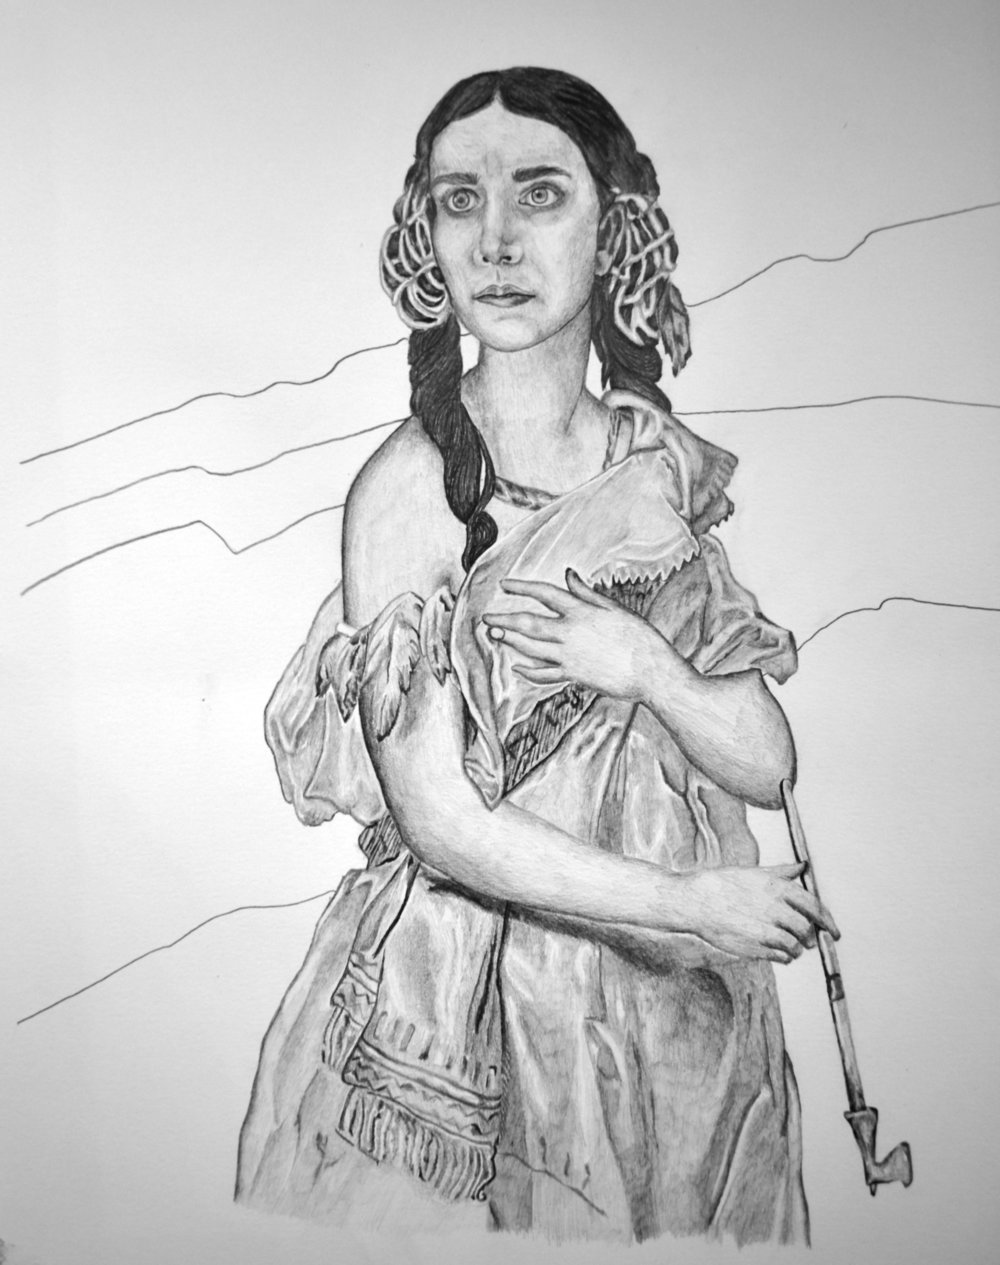 Self Portrait as Pocahontas, 2011